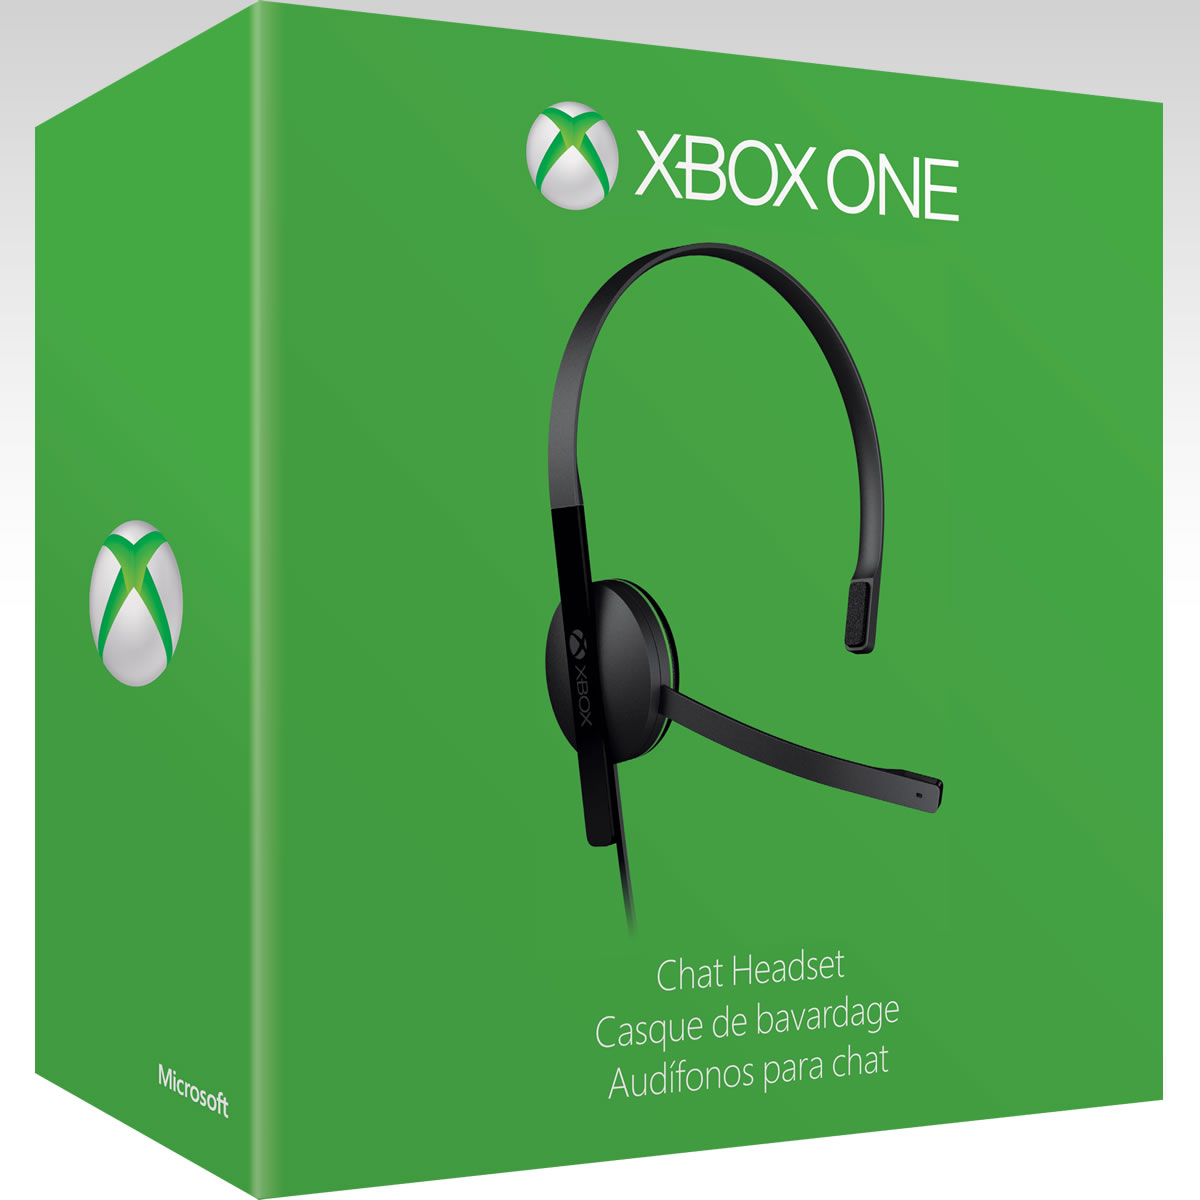 MICROSOFT OFFICIAL XBOX ONE CHAT HEADSET - MICROSOFT ������� XBOX ONE CHAT ��������� (XBOX ONE)